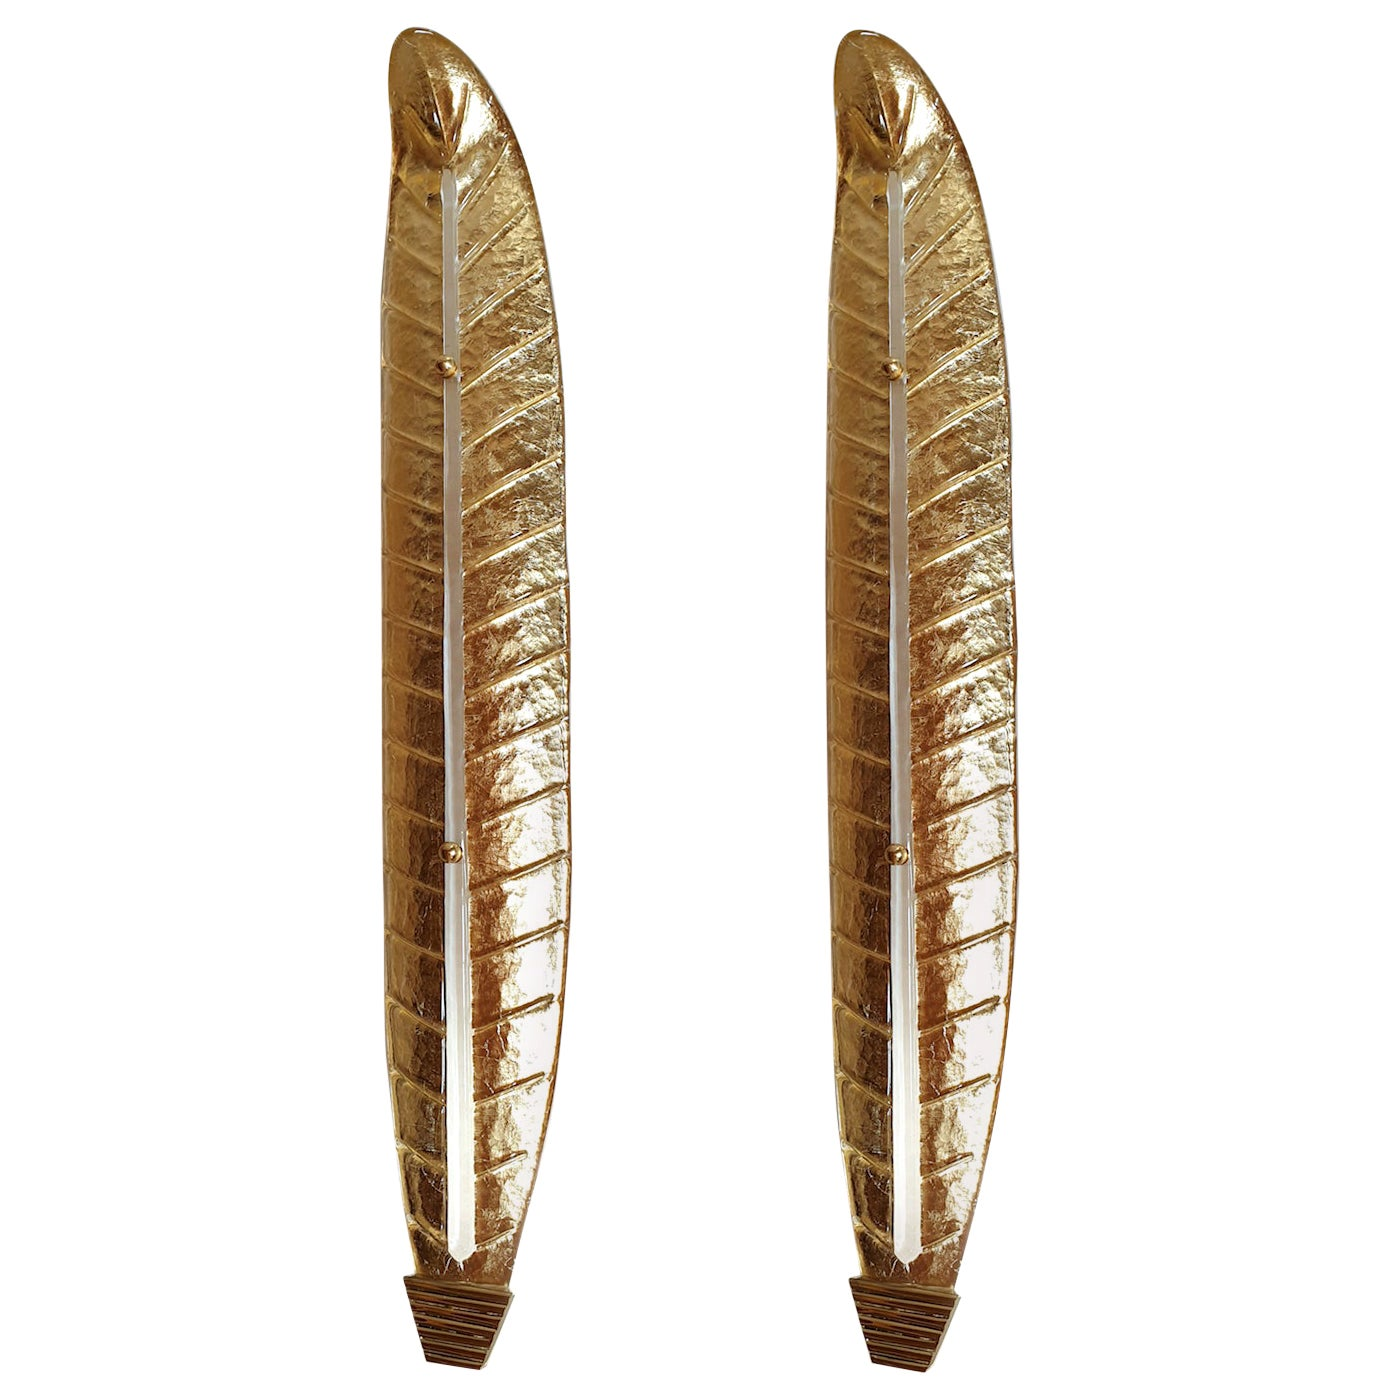 Two Large Mid-Century Modern Murano Glass Gold Leaf Sconces, Barovier Style 1970